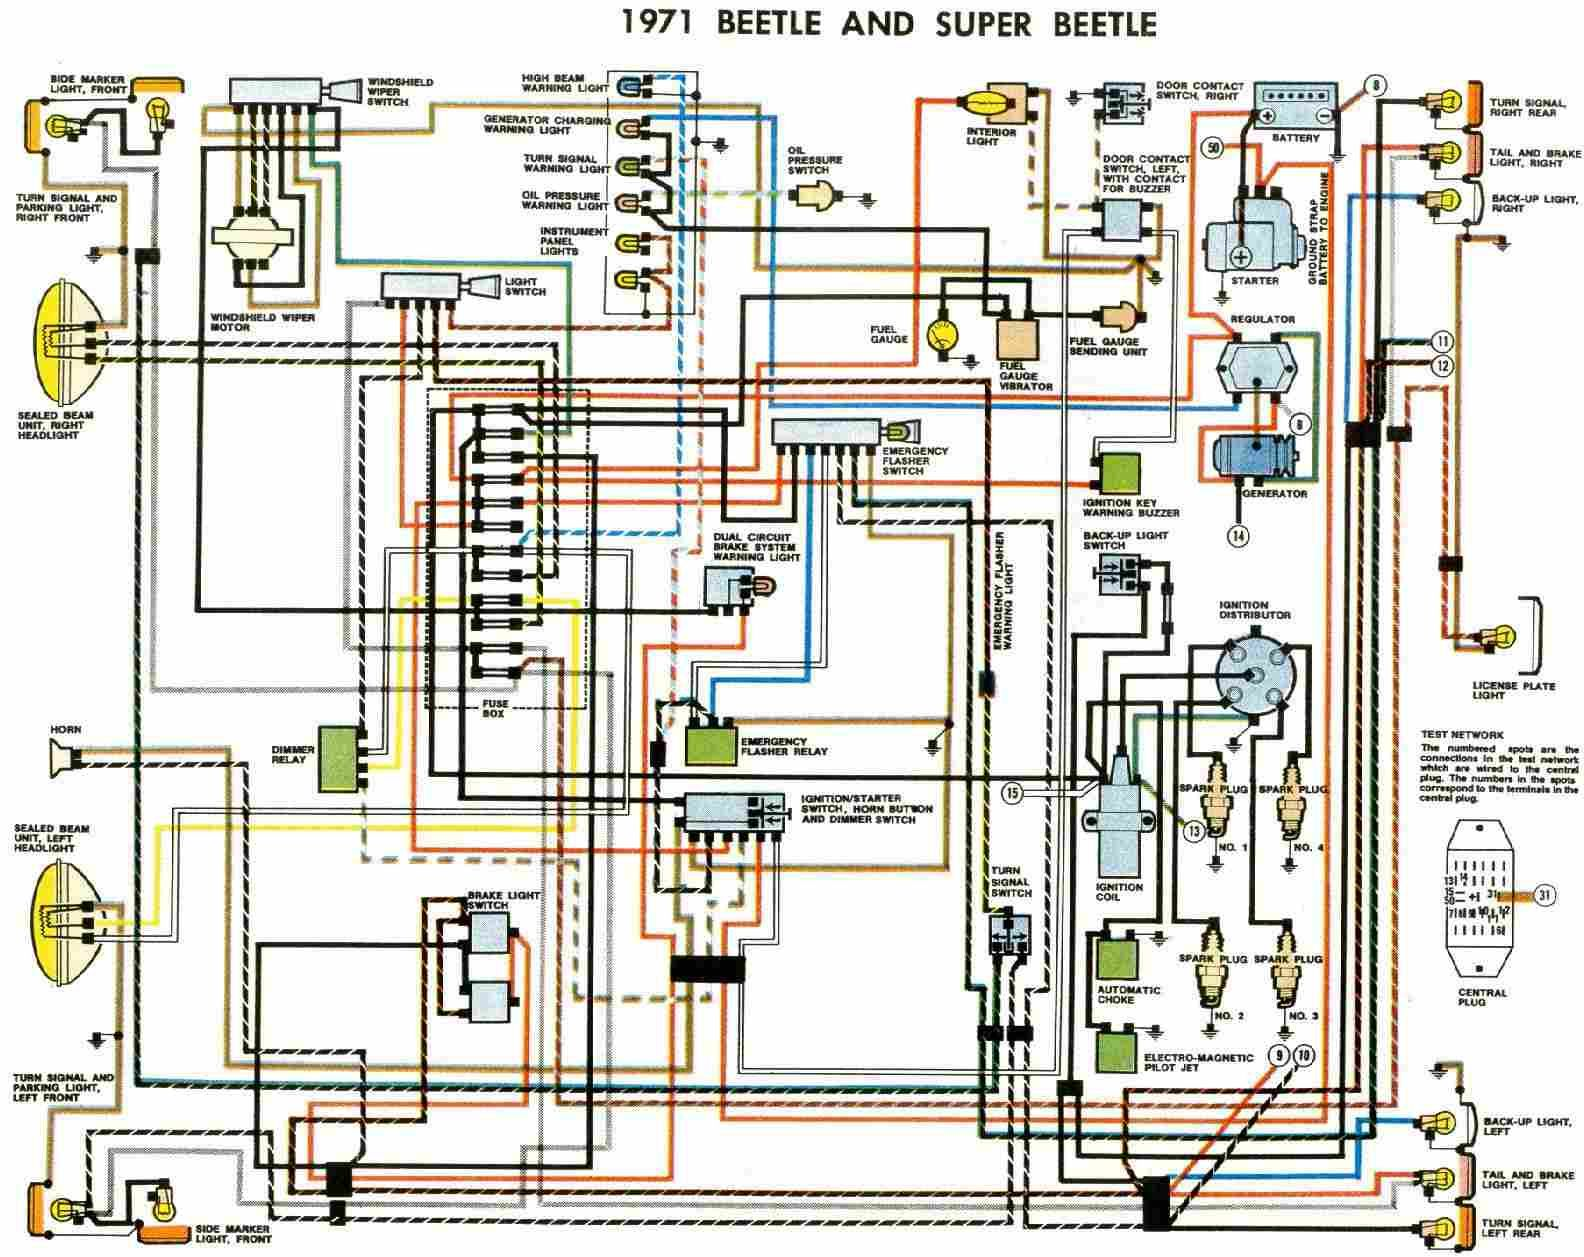 6379f2a777a0eb1b27fdba46670ceb6a free auto wiring diagram 1971 vw beetle and super beetle byocar 1971 vw bus wiring diagram at nearapp.co